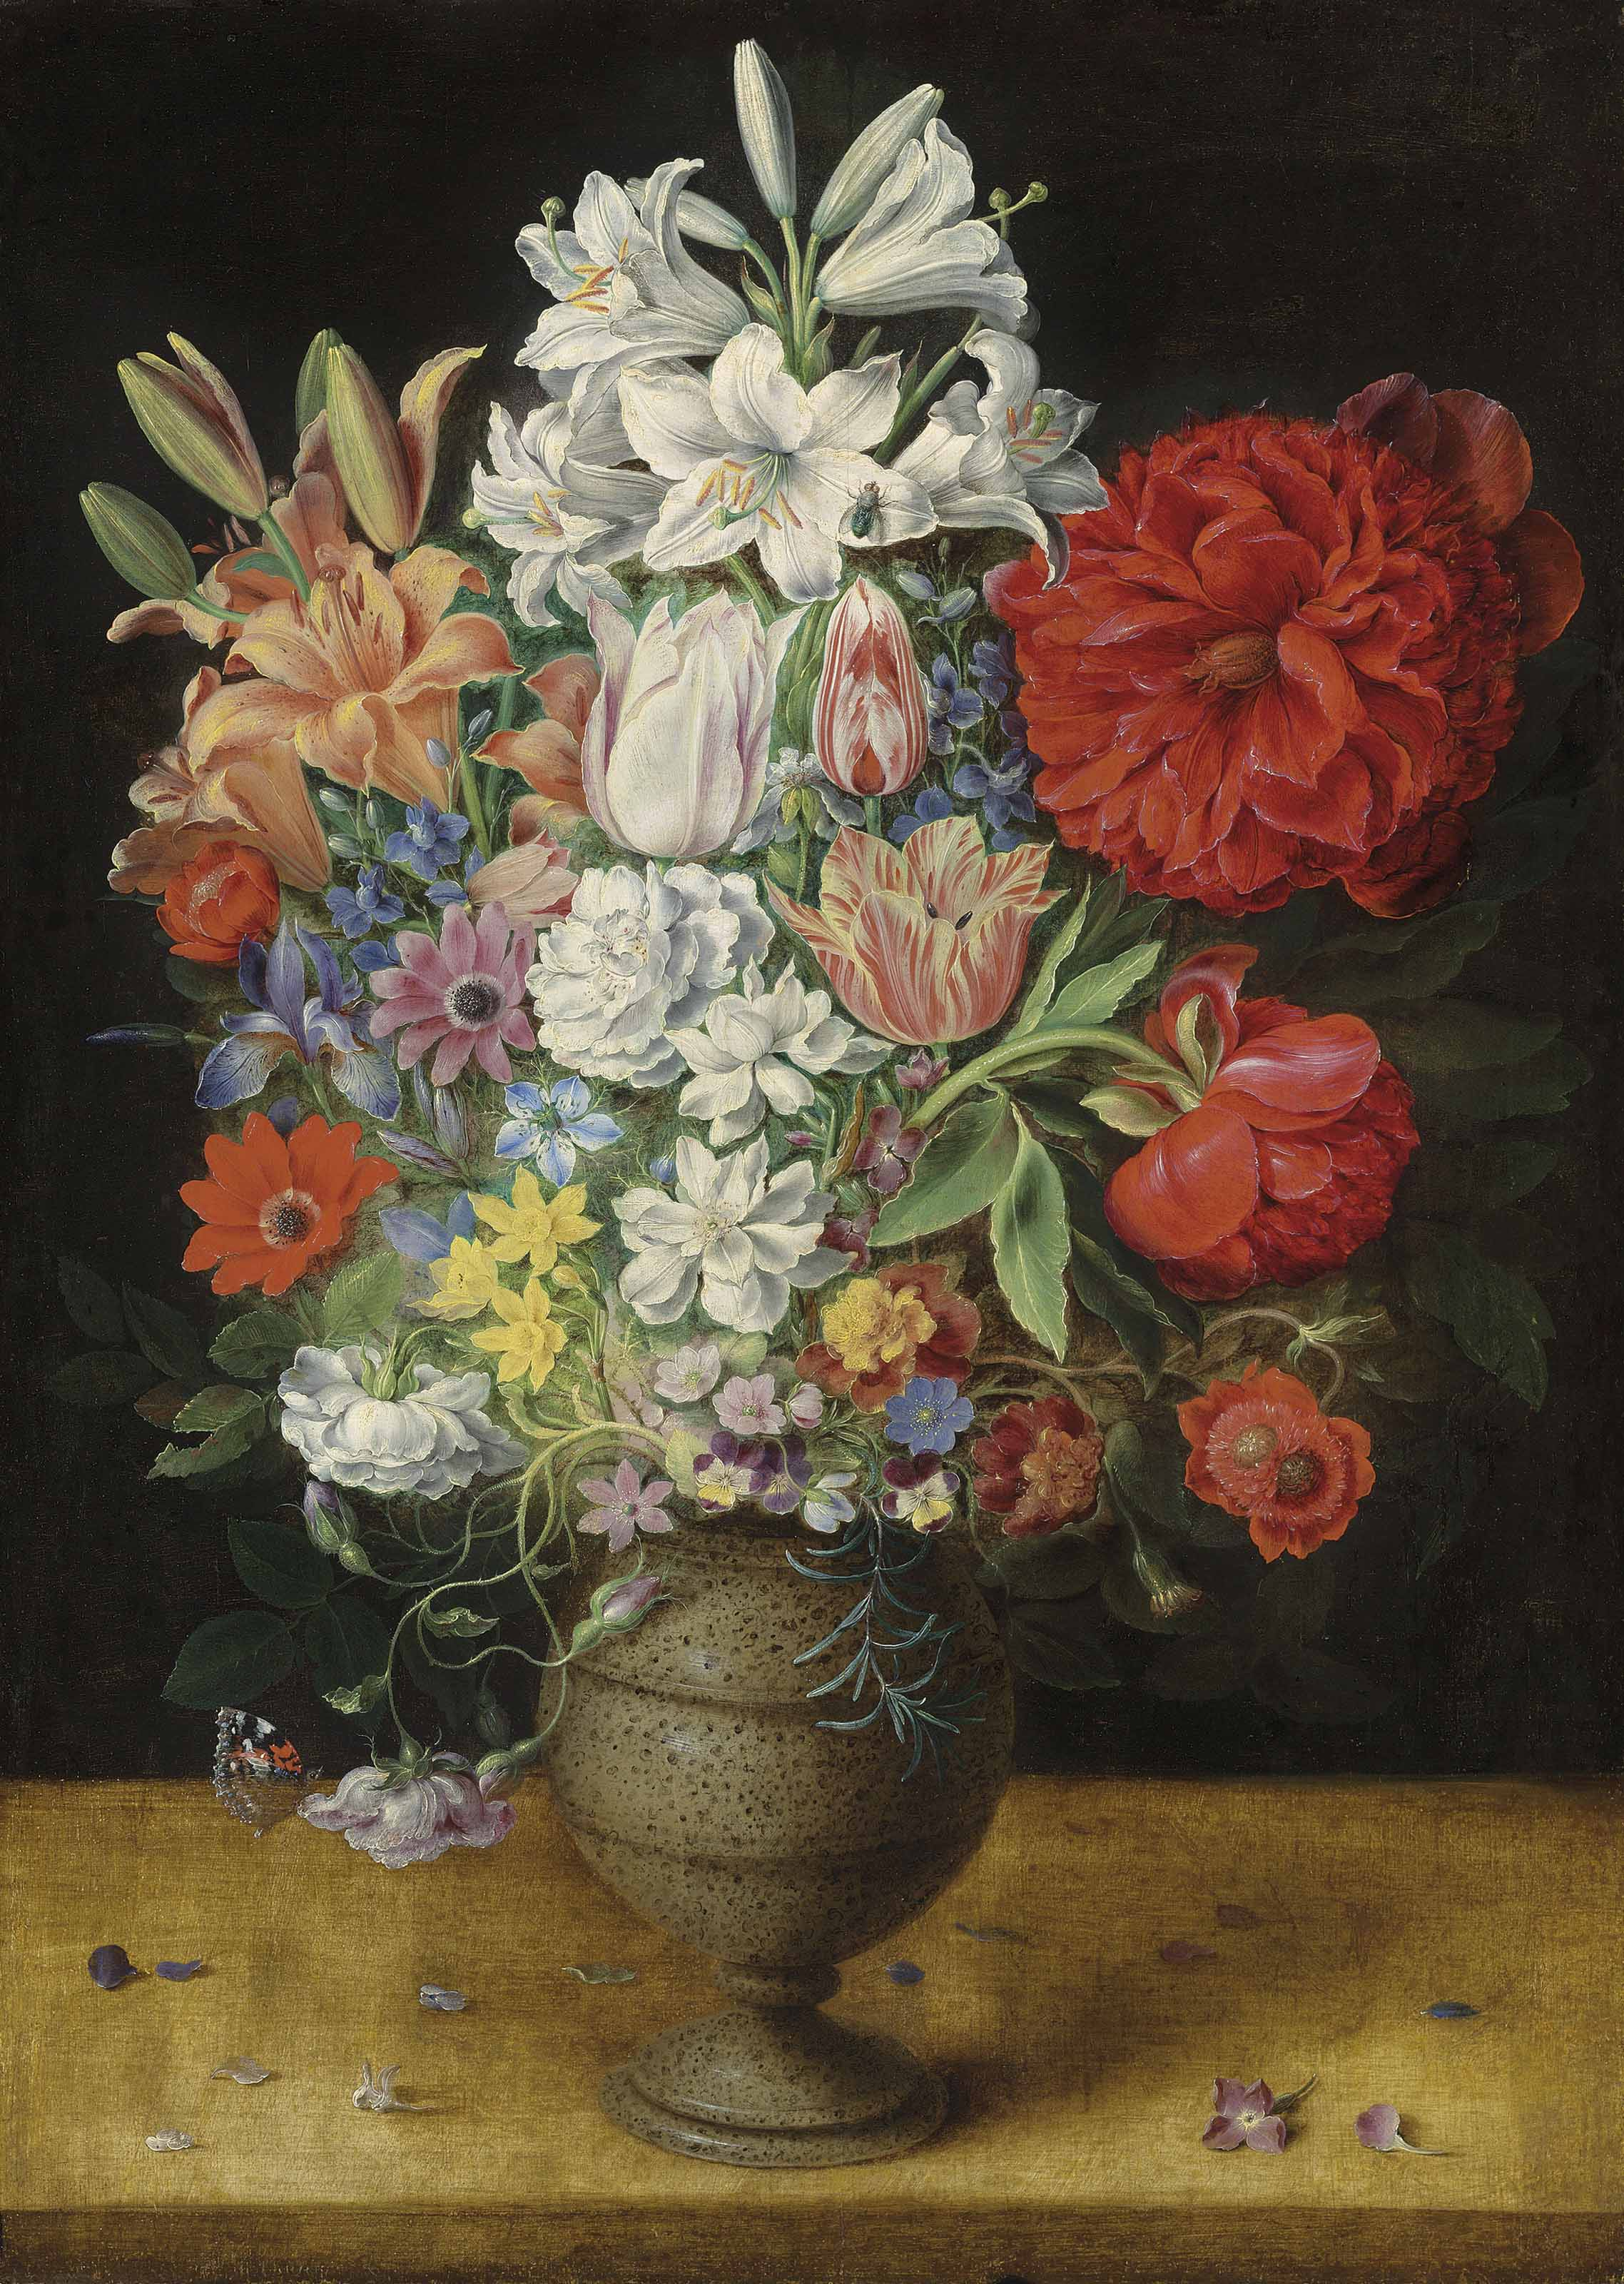 Flowers in a German tigerware vase, with a bluebottle fly and a Red Admiral butterfly, on a ledge